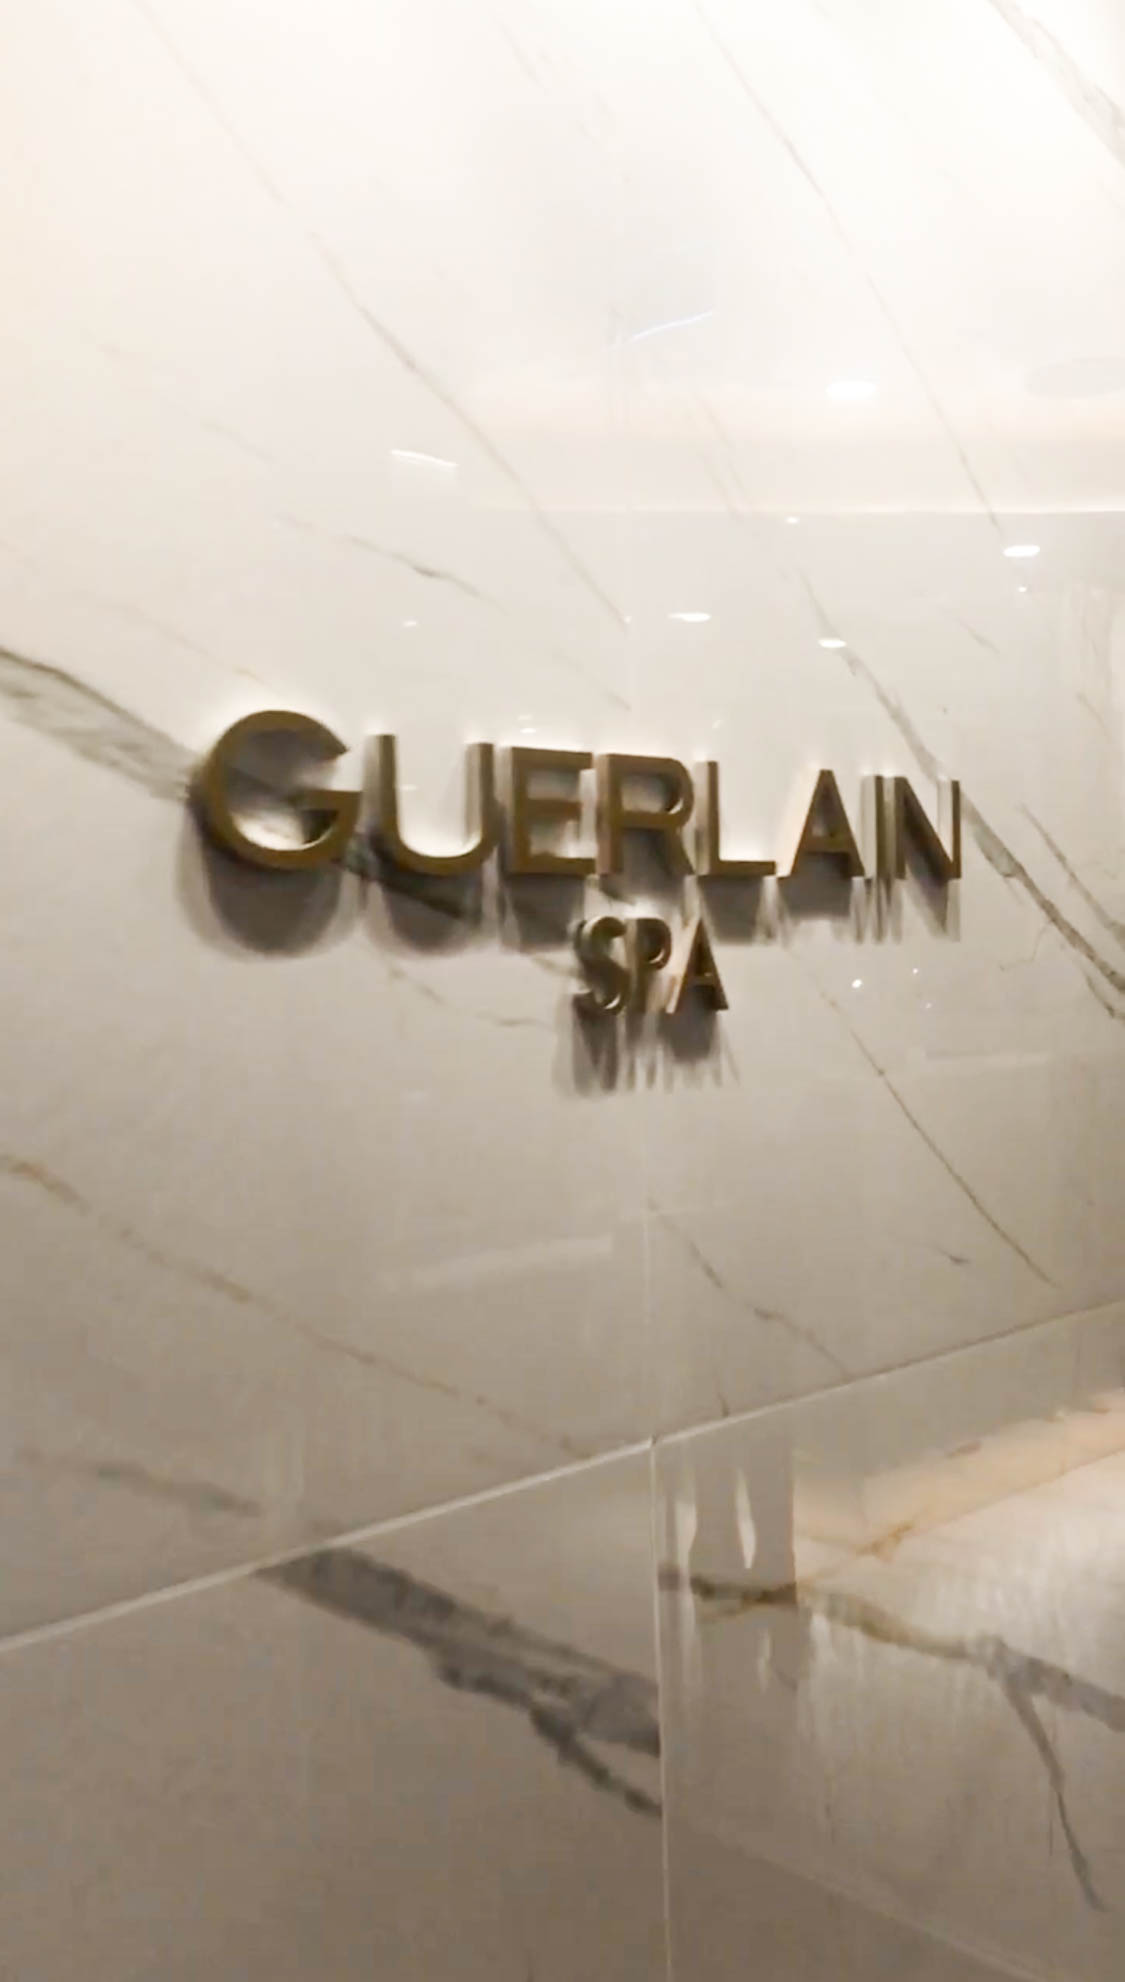 guerlain spa entry at hotel x